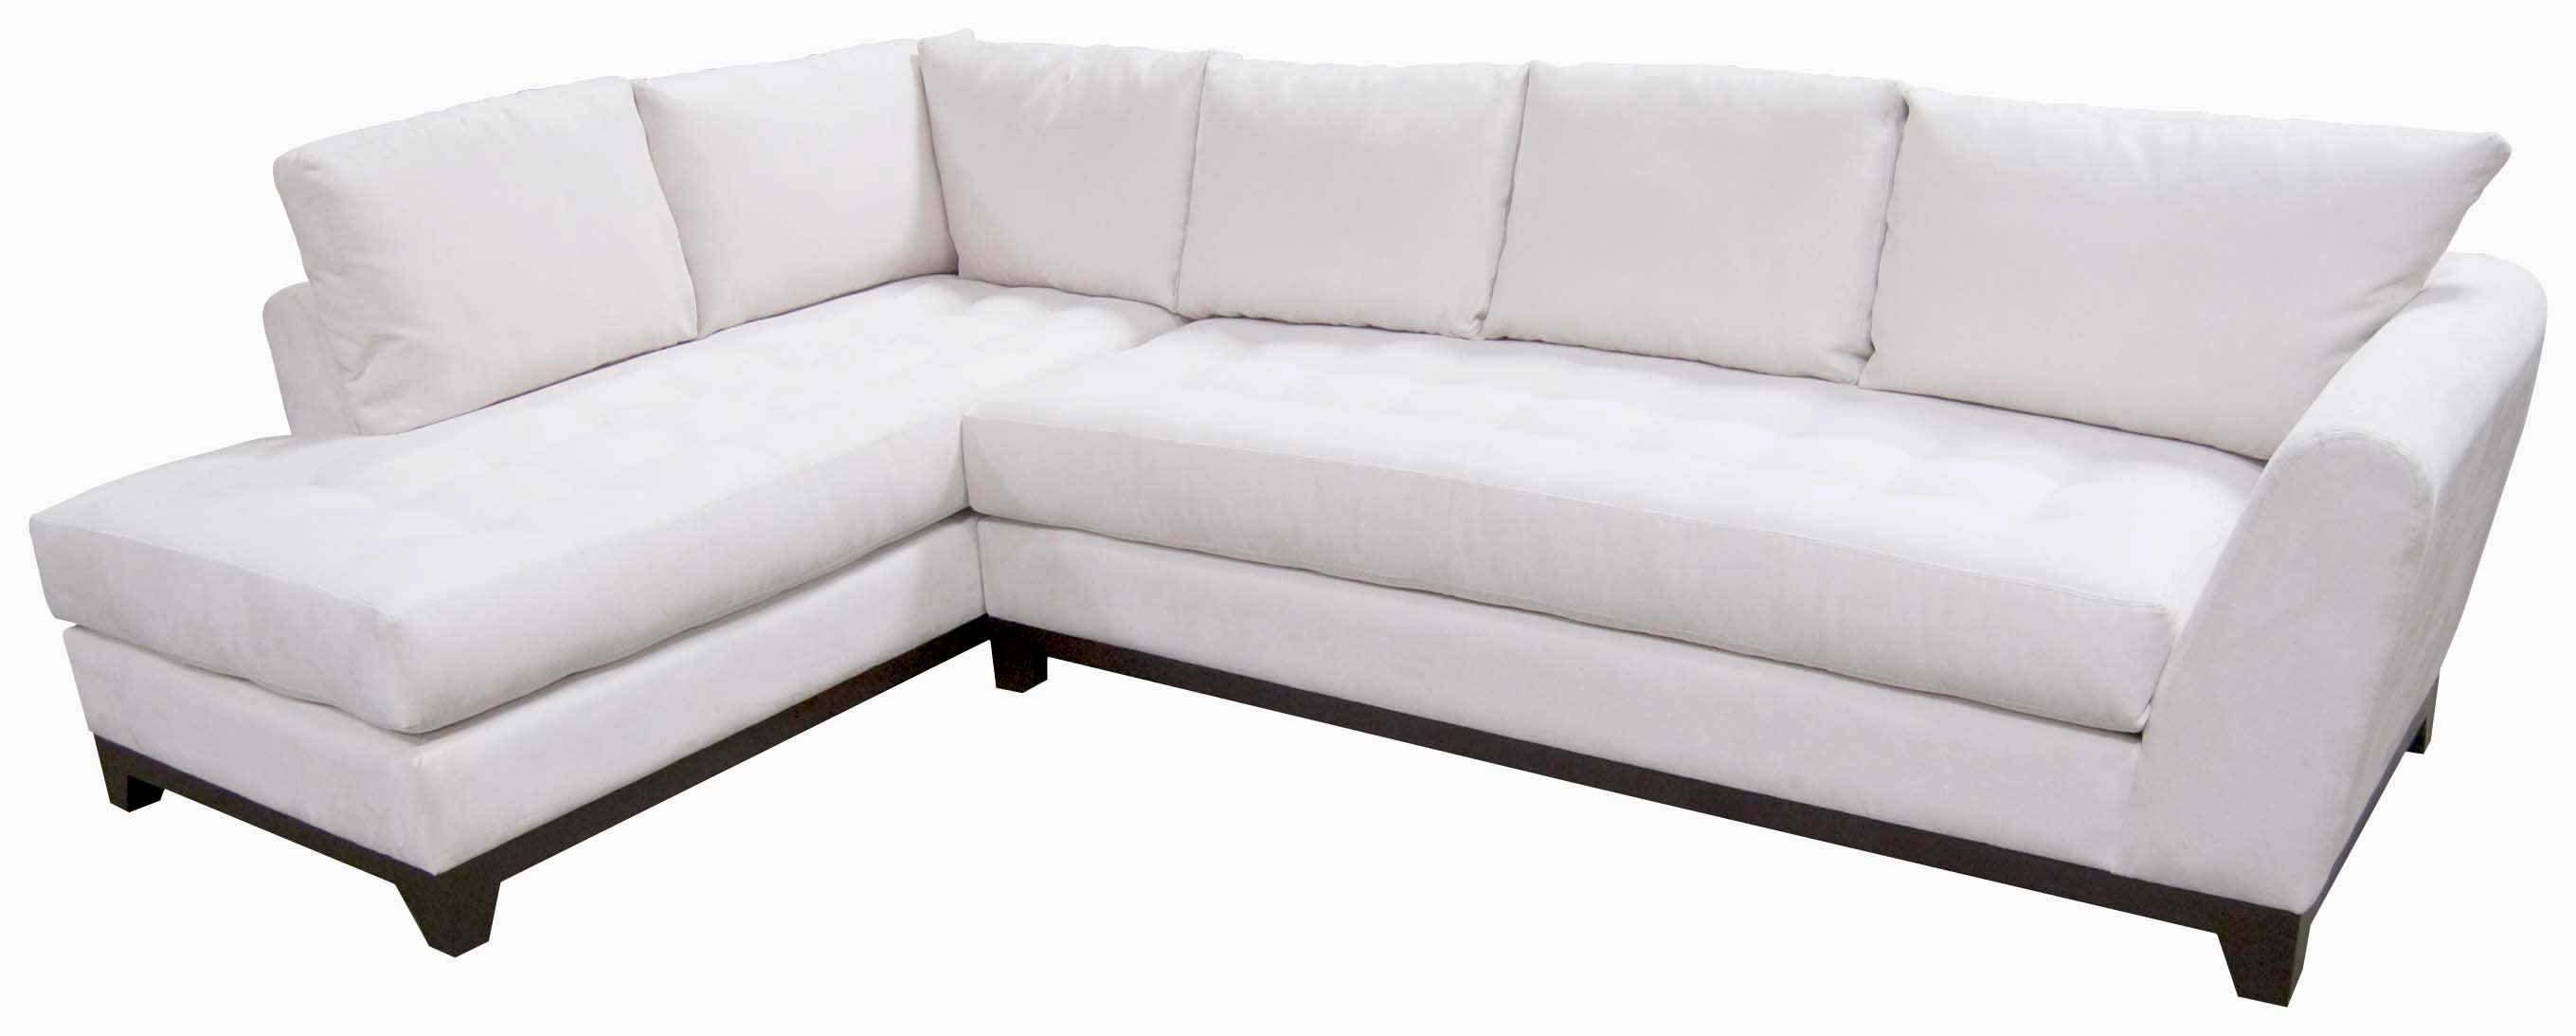 beautiful small sectional sofa with chaise architecture-Lovely Small Sectional sofa with Chaise Gallery